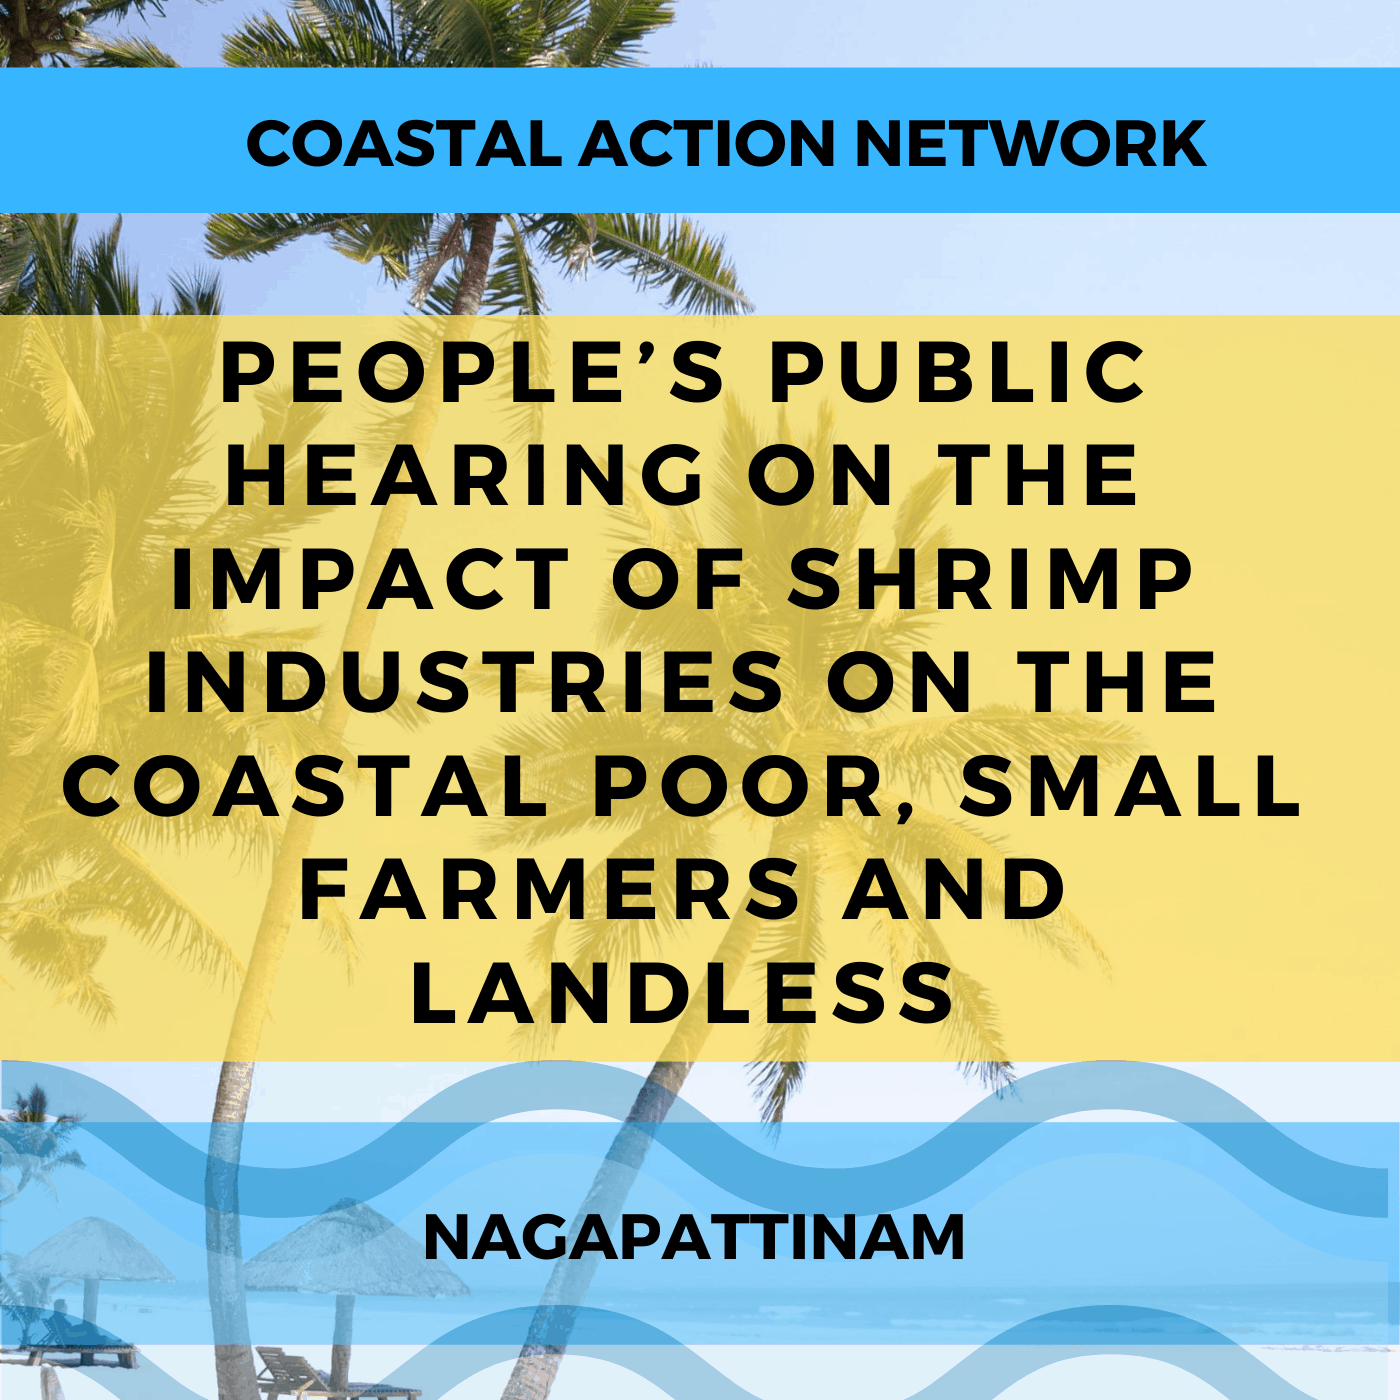 People's Public Hearing on the Impact of Shrimp Industries on the Coastal Poor, Small Farmers and Landless